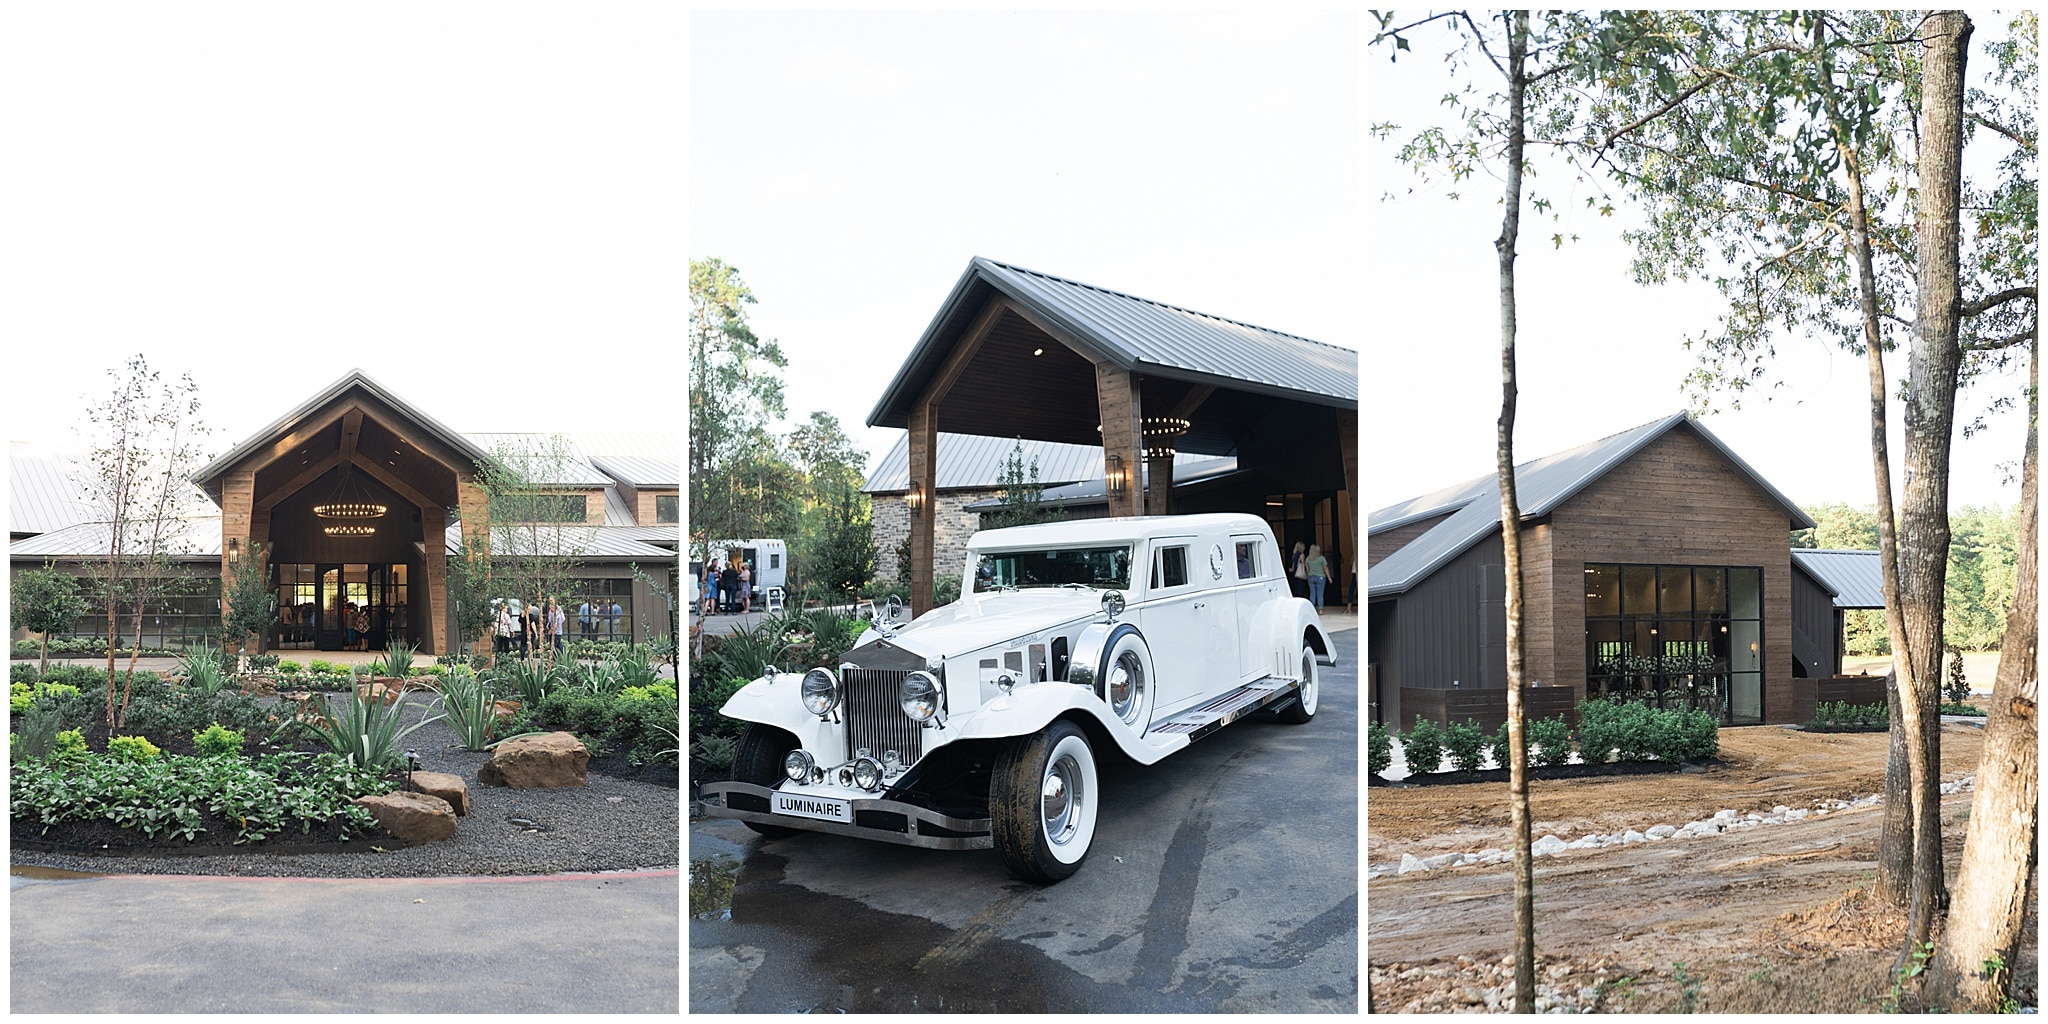 Luminaire wedding venue outside at their open house captured by Swish and Click Photography